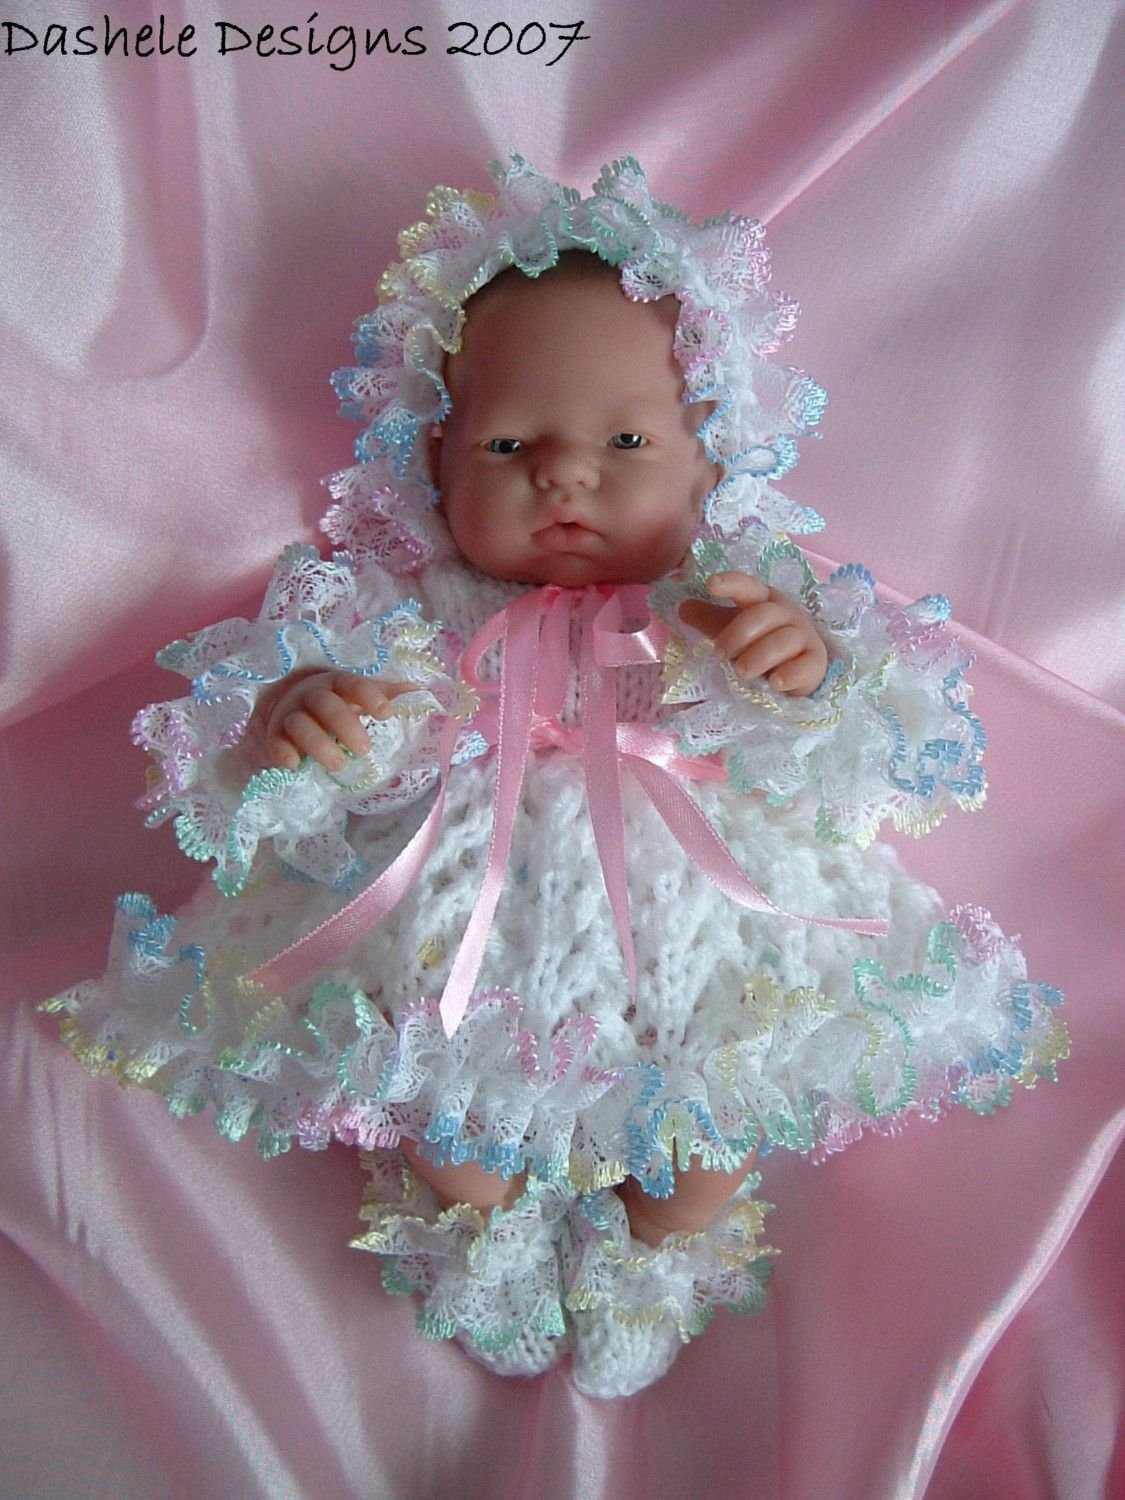 Knitting Pattern For 10 Inch Dolls Emmy By Dasheledesigns On Etsy Breien En Haken Breien Pop Breien Baby